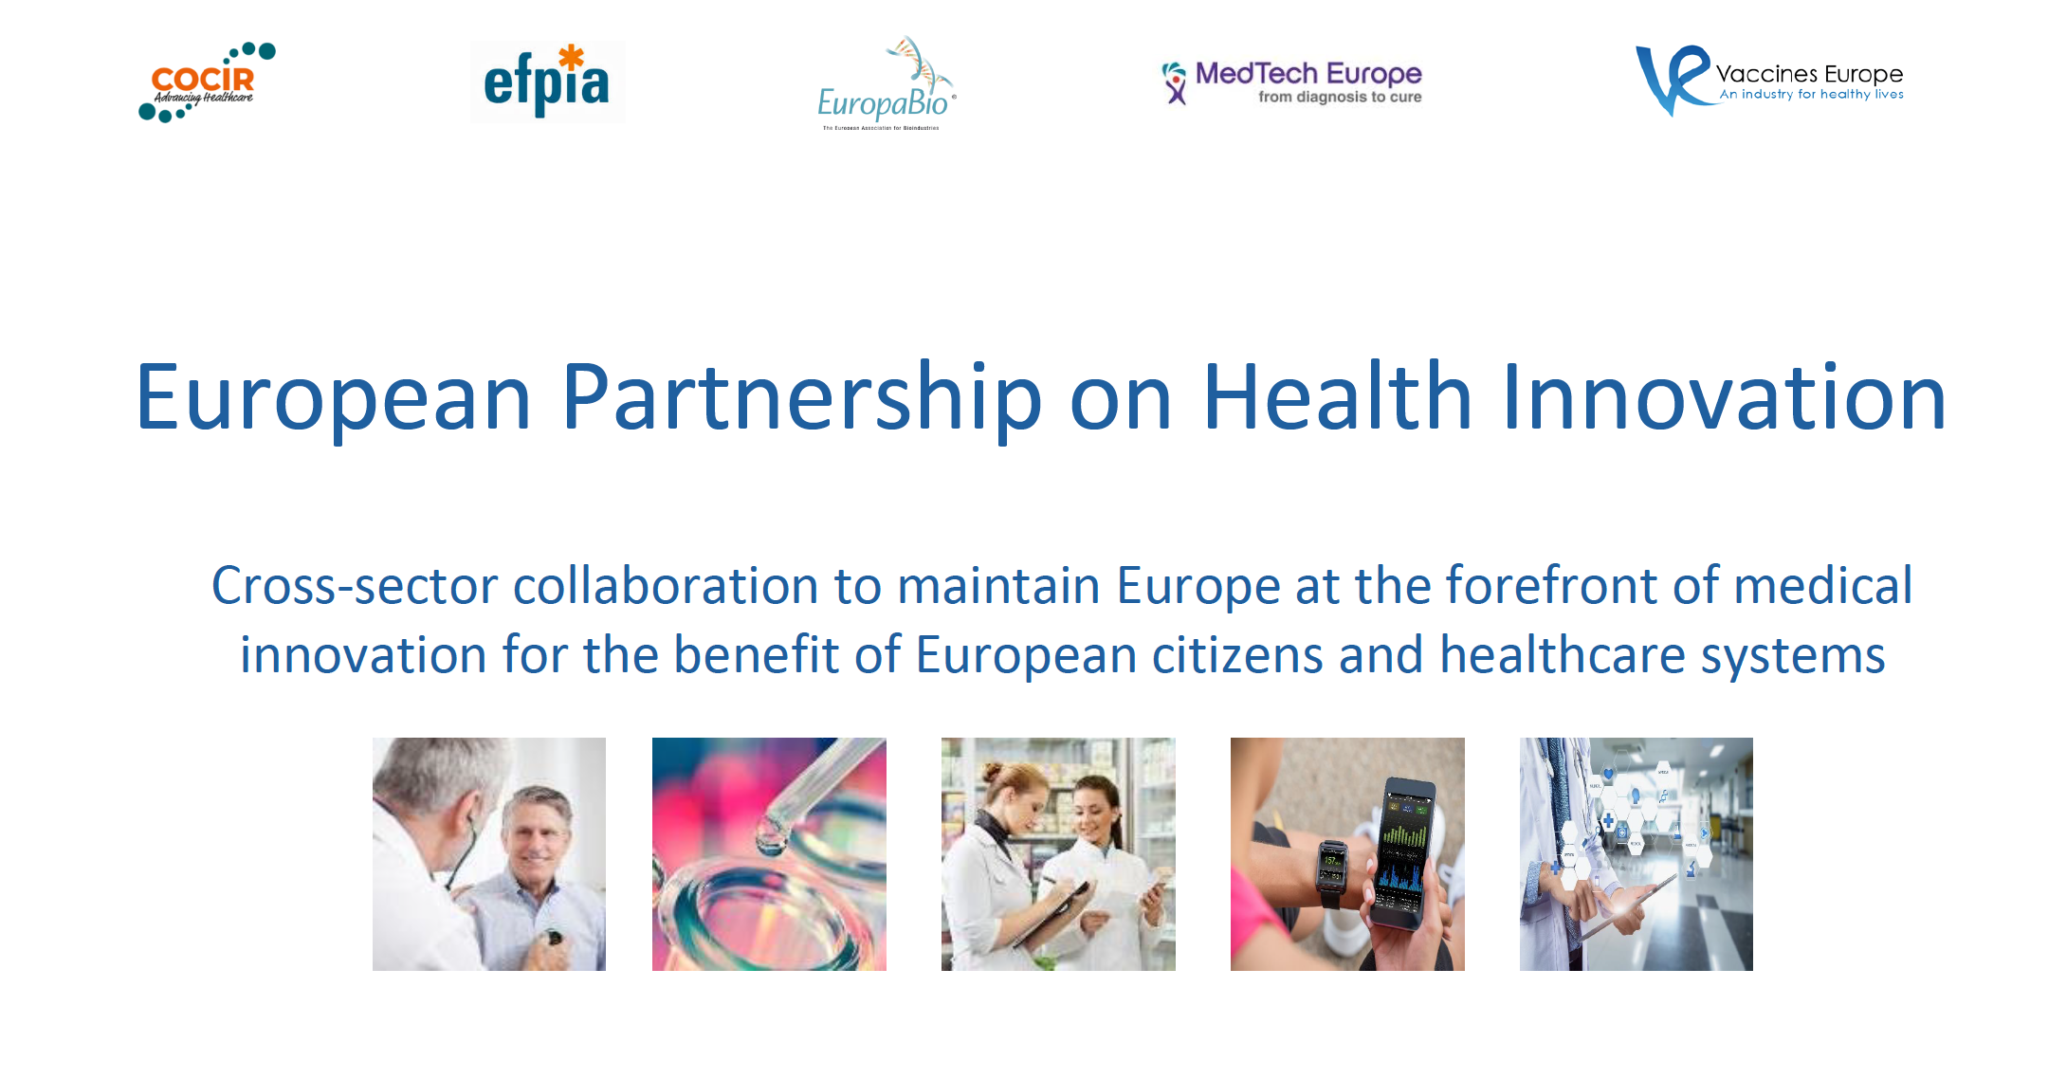 Contribute to the public consultation about the EUHealthPPP before Nov. 24, 2019